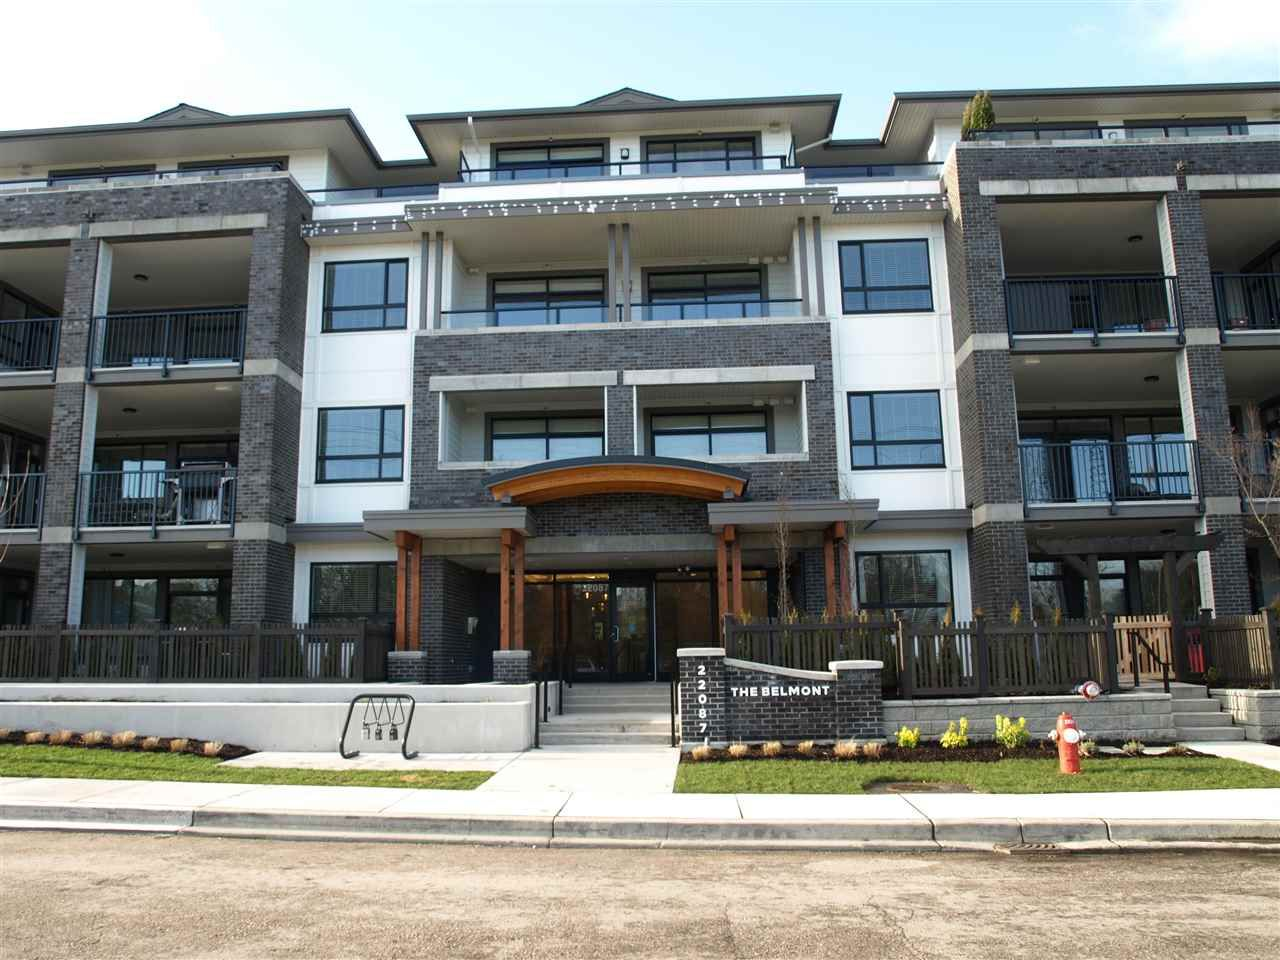 """Main Photo: 406 22087 49 Avenue in Langley: Murrayville Condo for sale in """"Belmont"""" : MLS®# R2367757"""